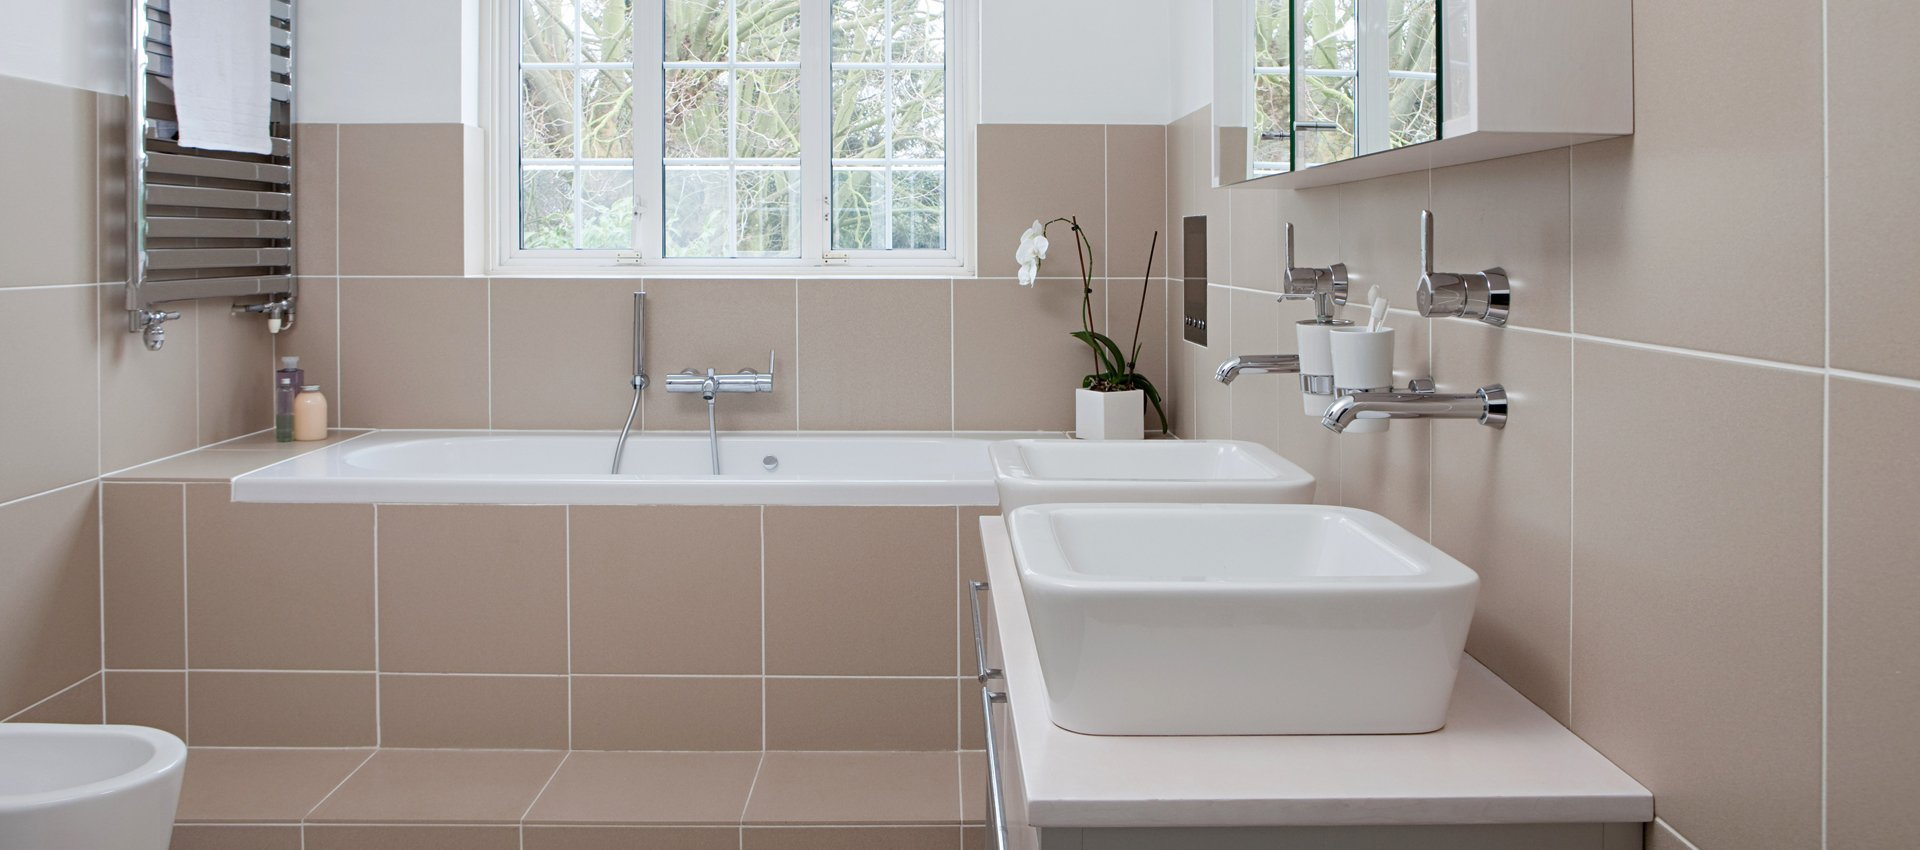 Bathroom Fittings Fixtures: Bathroom Fixtures And Fittings In Northamptonshire And The UK